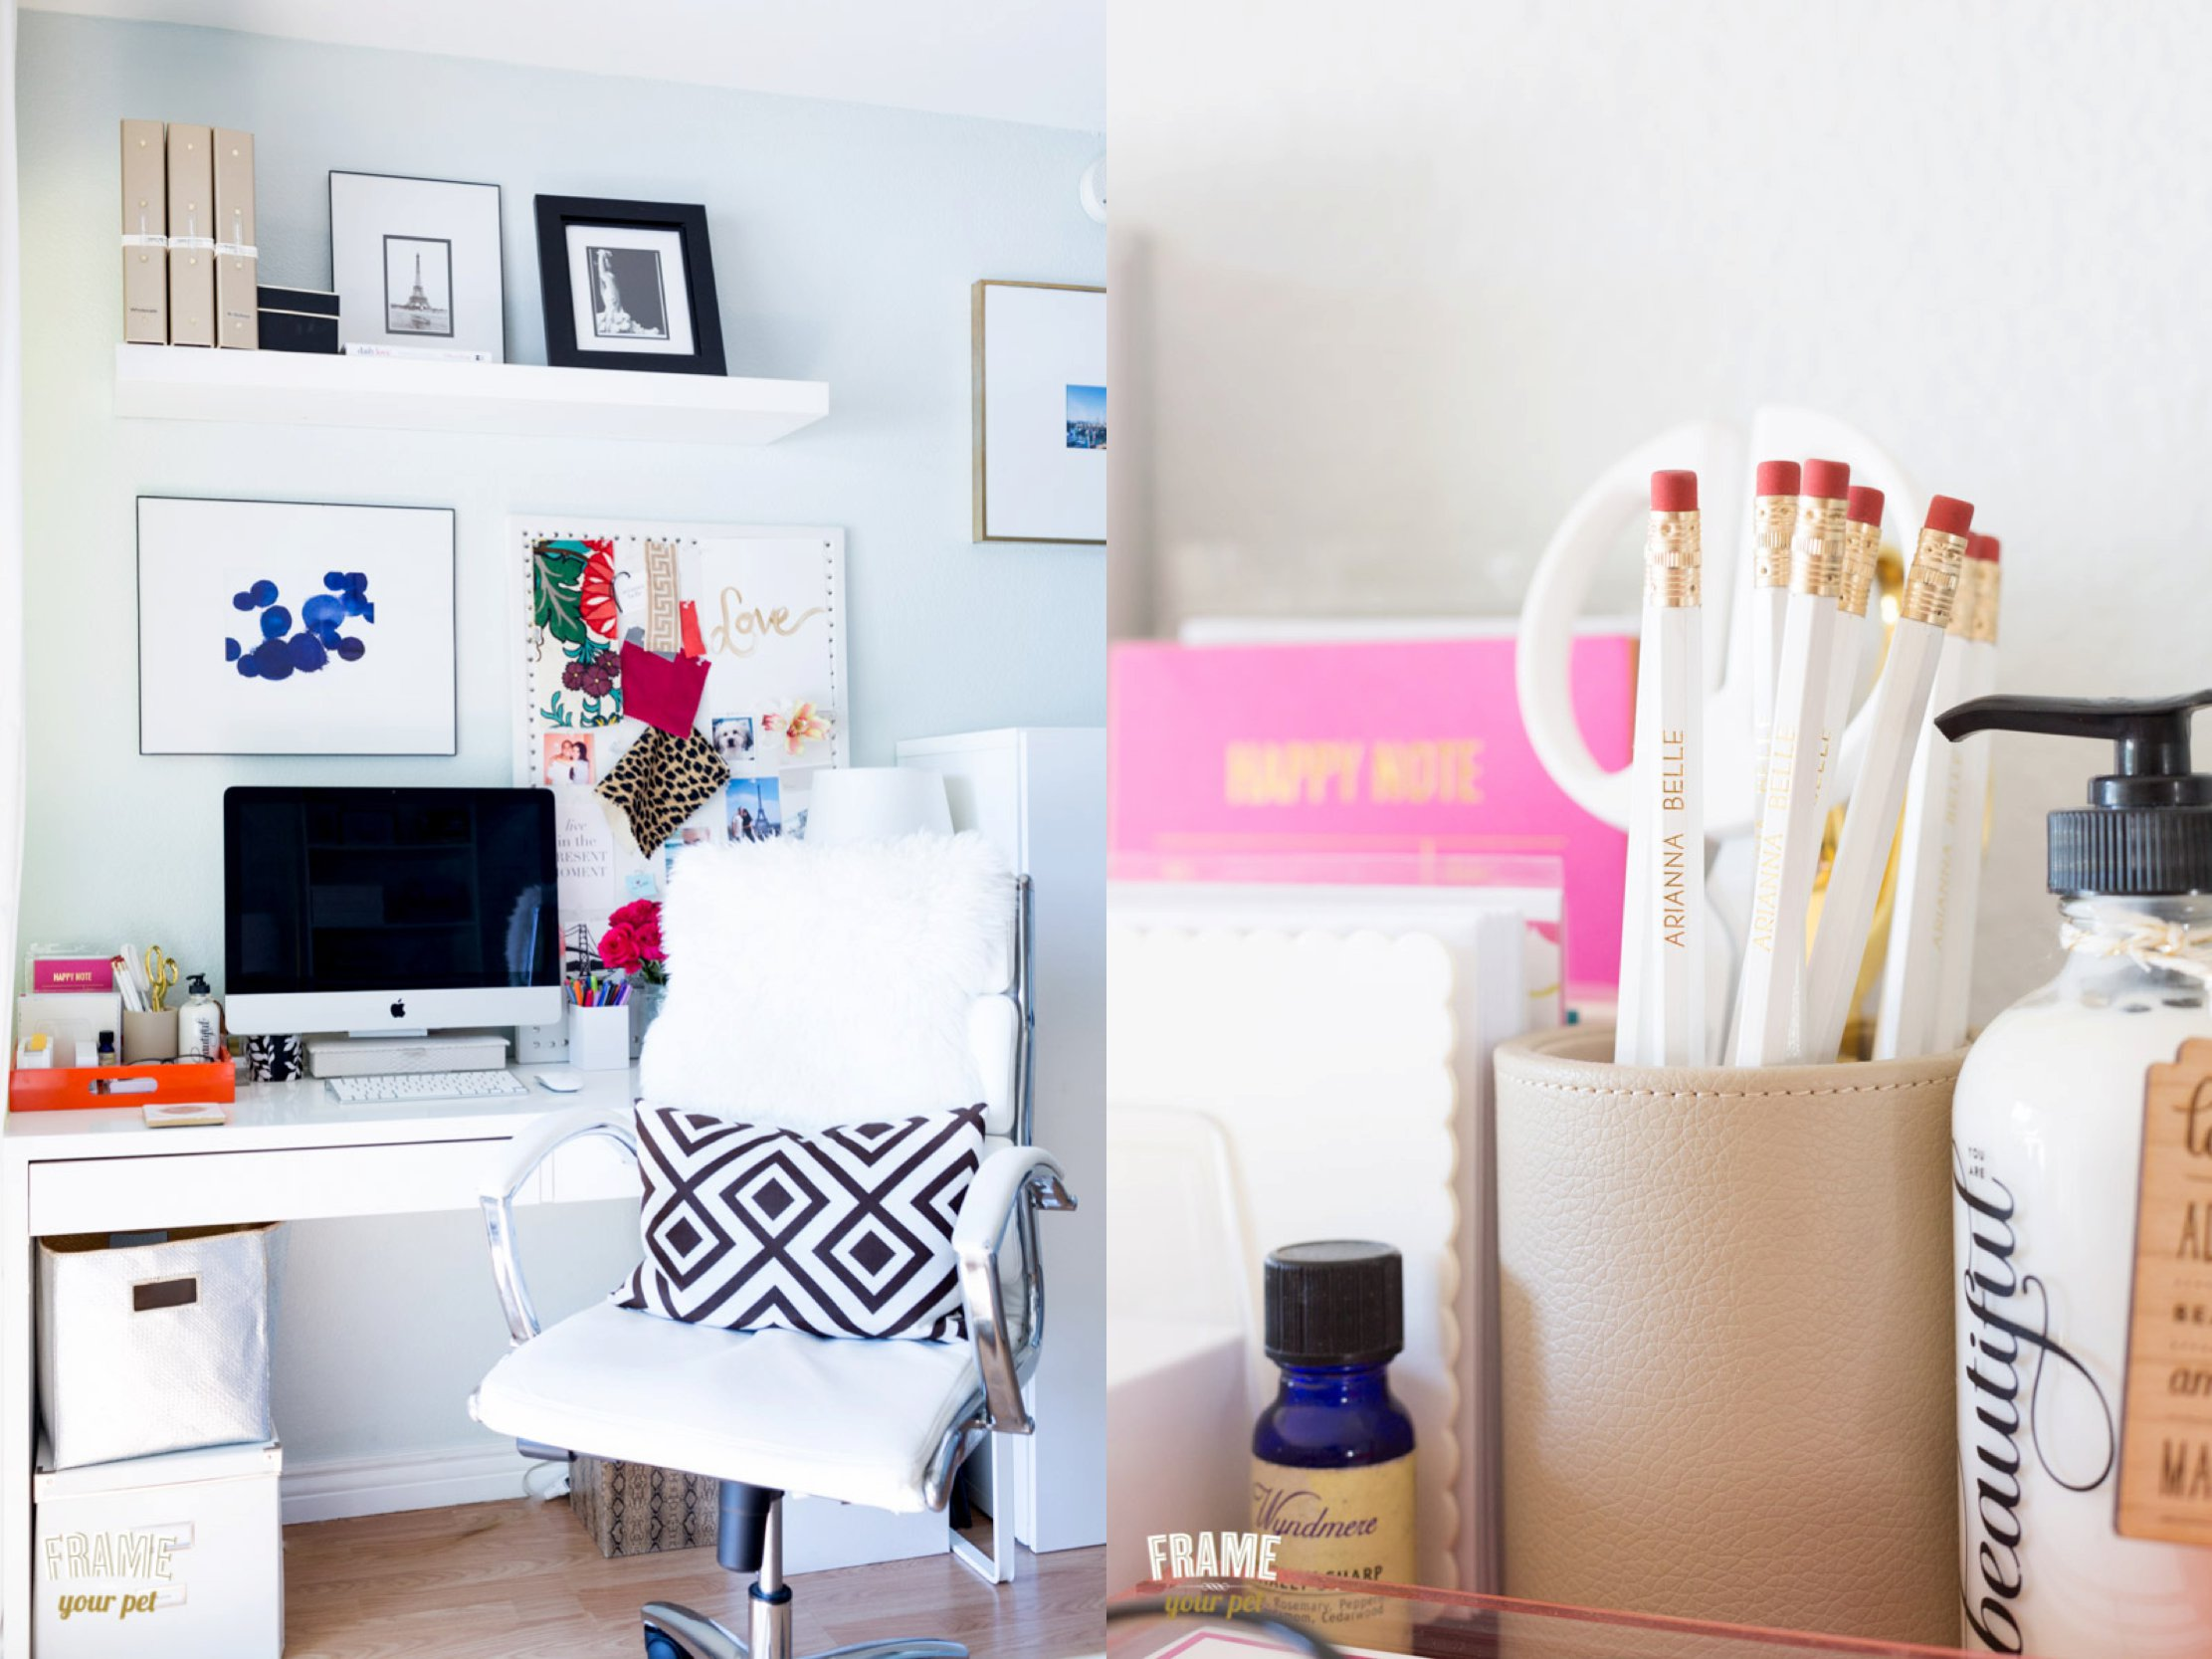 Left: a corner turned into a home office. Right: details of things you can find in her desktop.